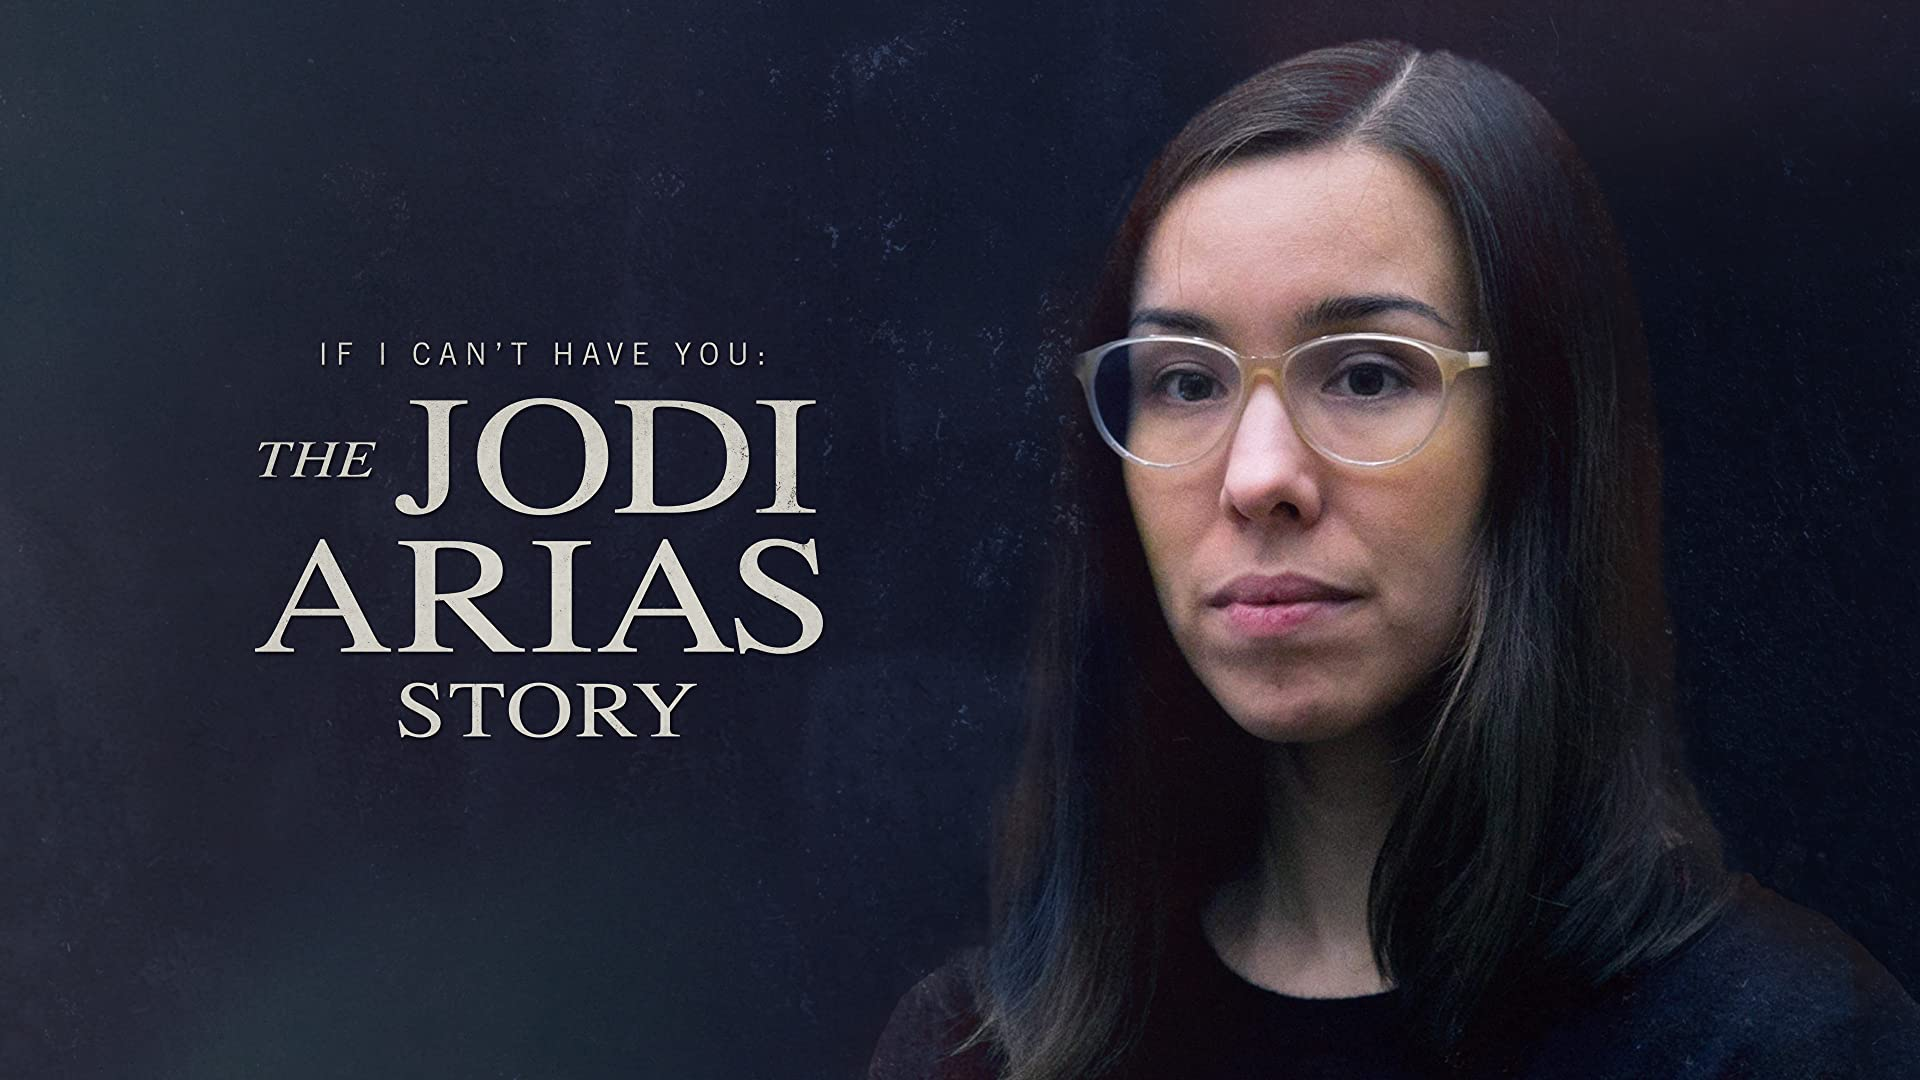 If I Can't Have You: The Jodi Arias Story - Season 1